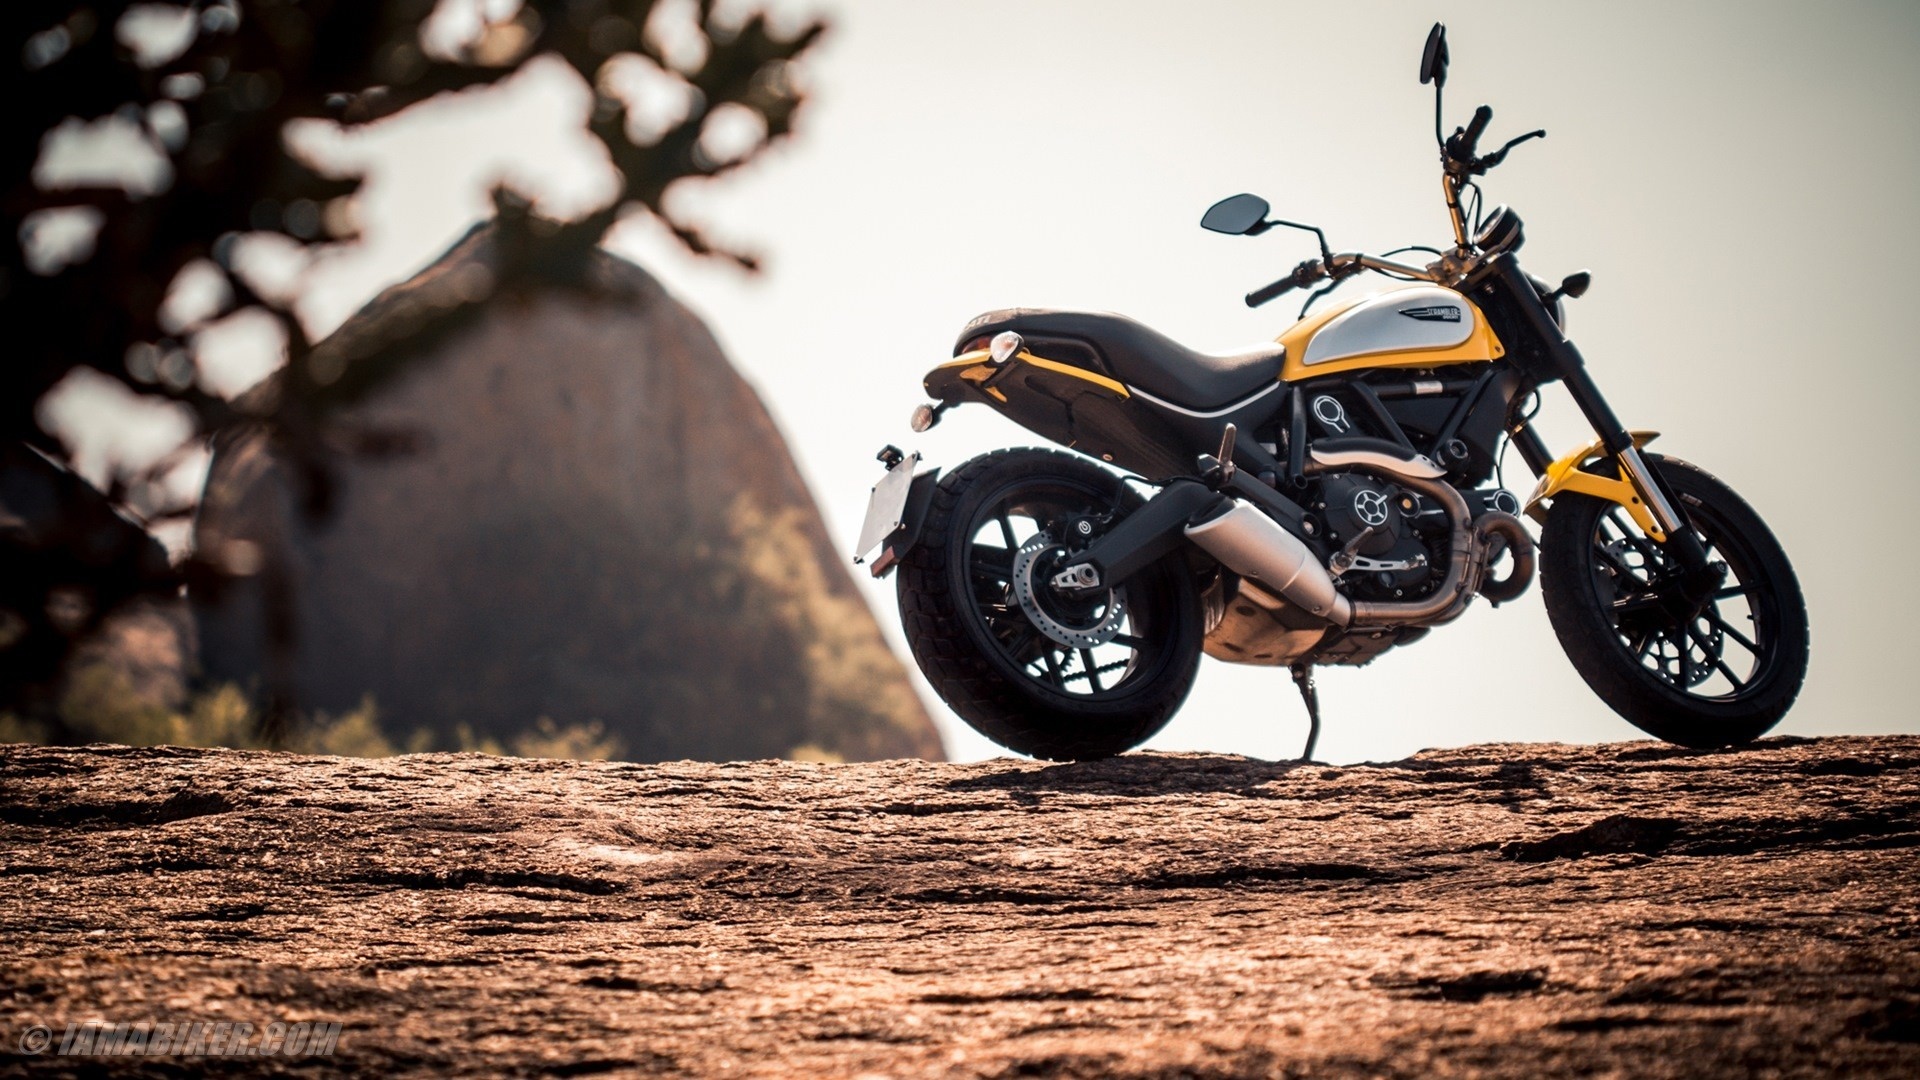 1920x1080 Ducati Scrambler HD wallpaper